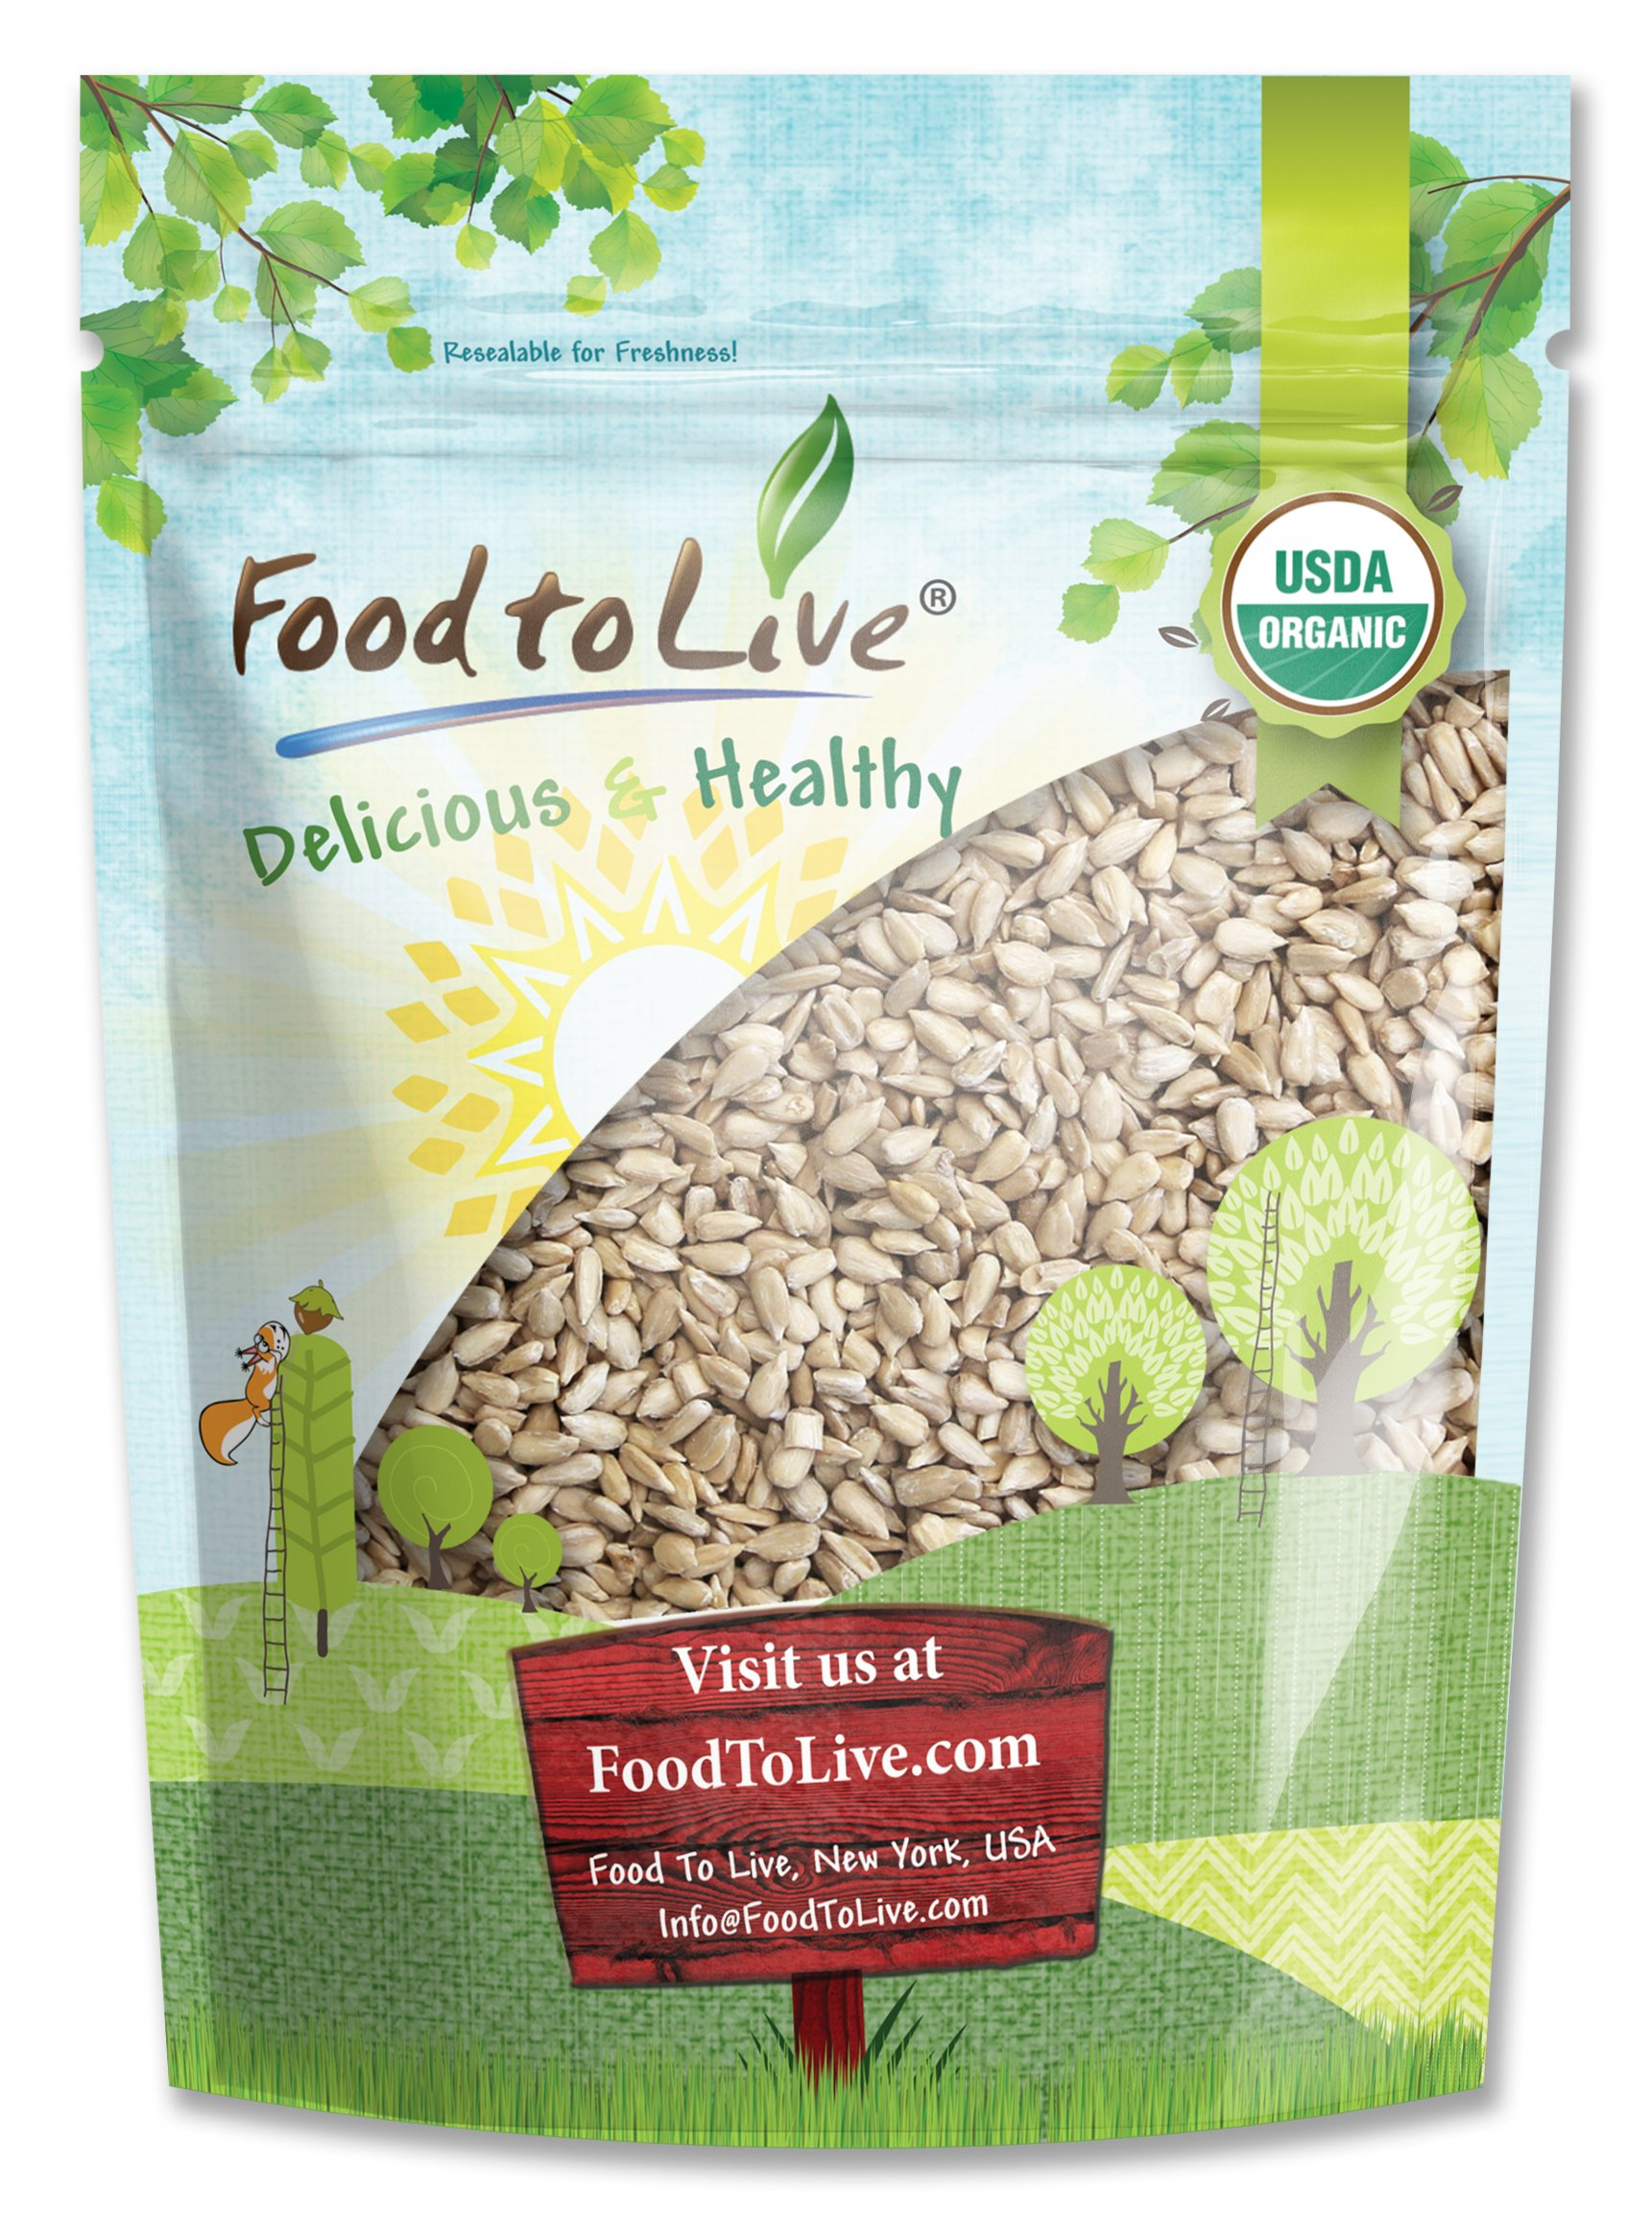 Food to Live Organic Sunflower Seeds (Hulled, Kosher) (1 Pound)